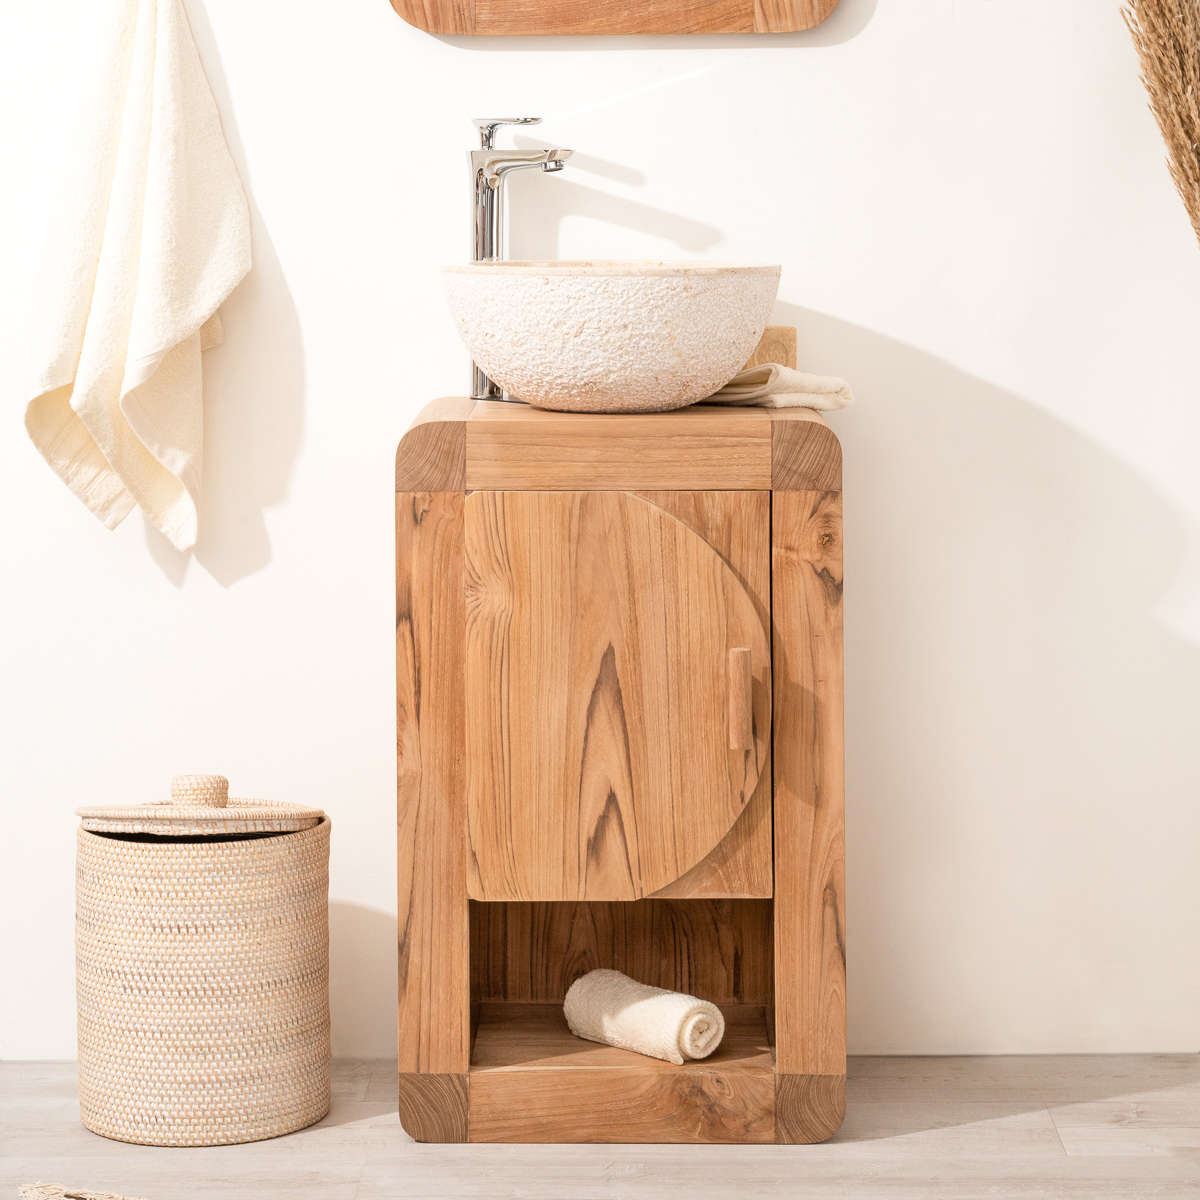 Meuble sous vasque simple vasque en bois teck massif contemporain rectangle naturel l - Meuble salle de bain en promotion ...